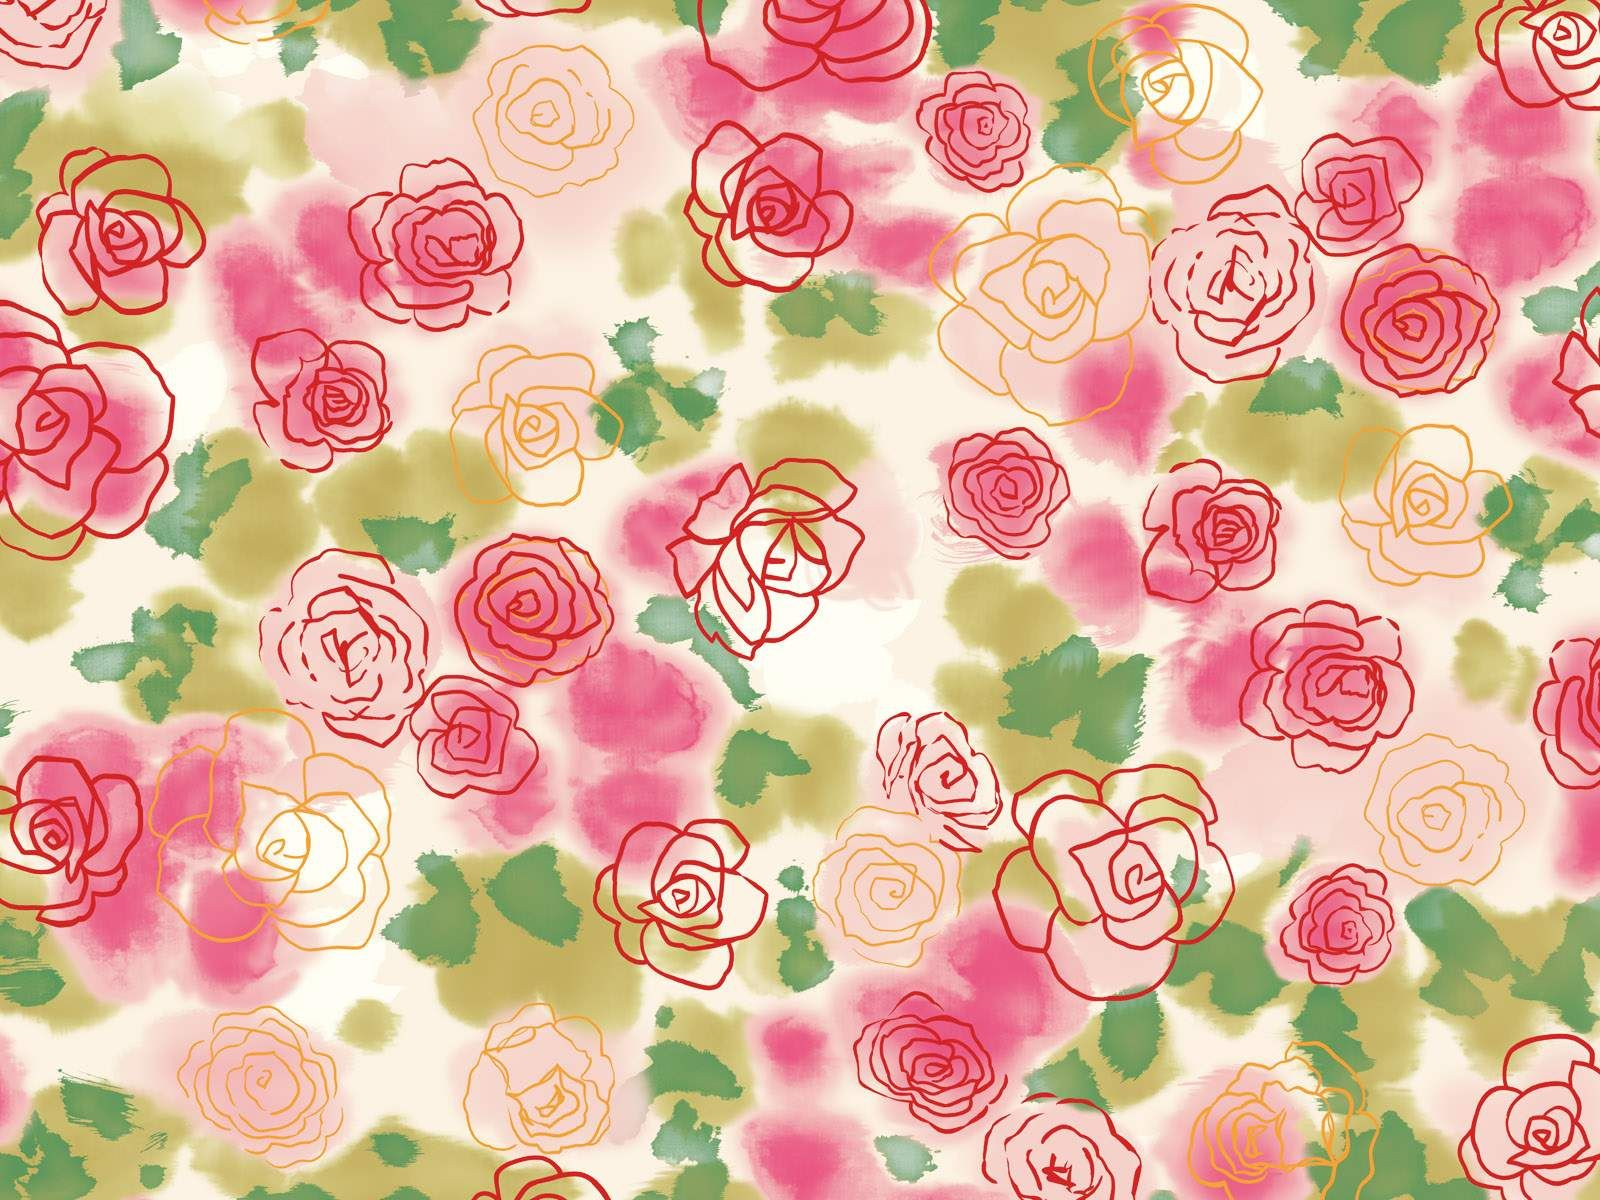 Easy Painted Rose Wonderful Flowers Paintings Pictures And